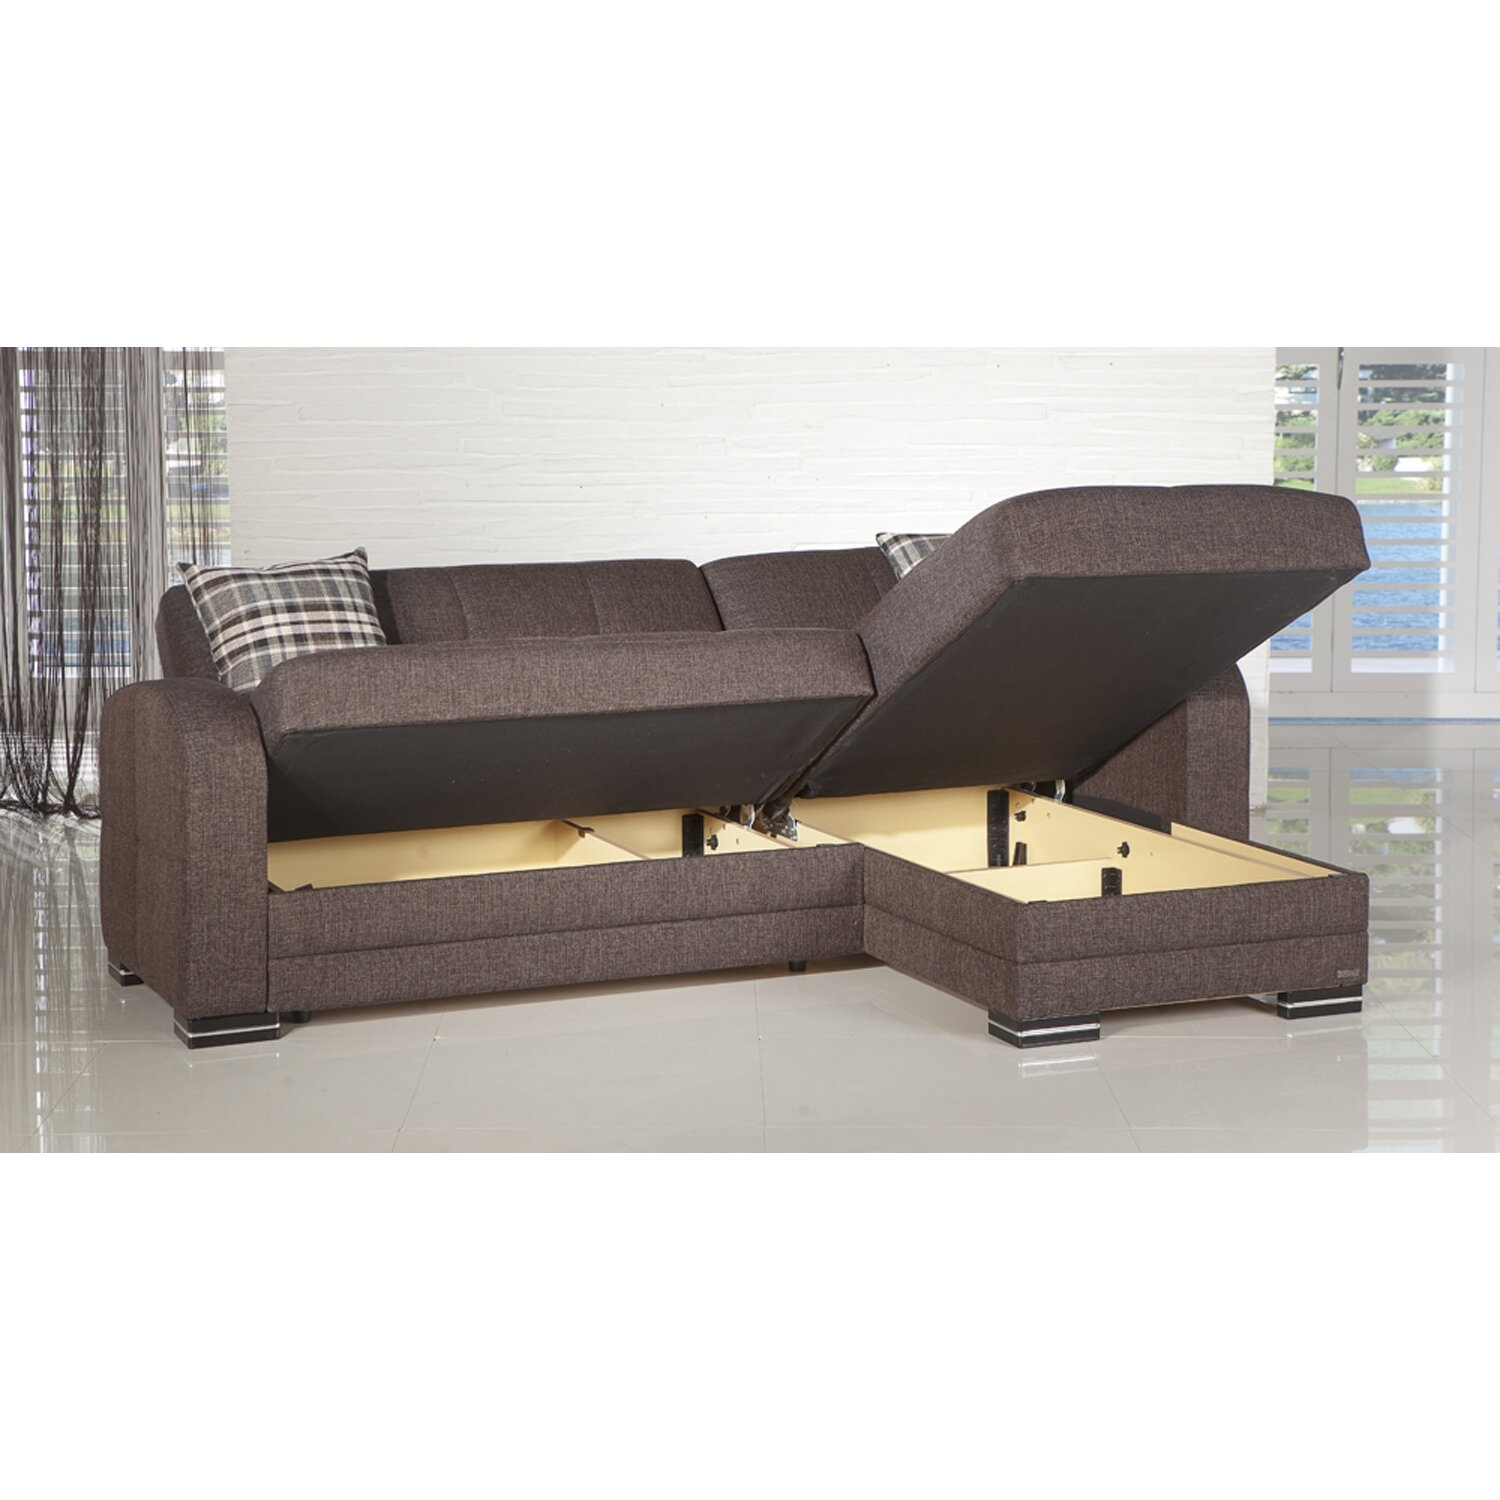 storage sectional sofa bed steam cleaning service ideas on foter 2